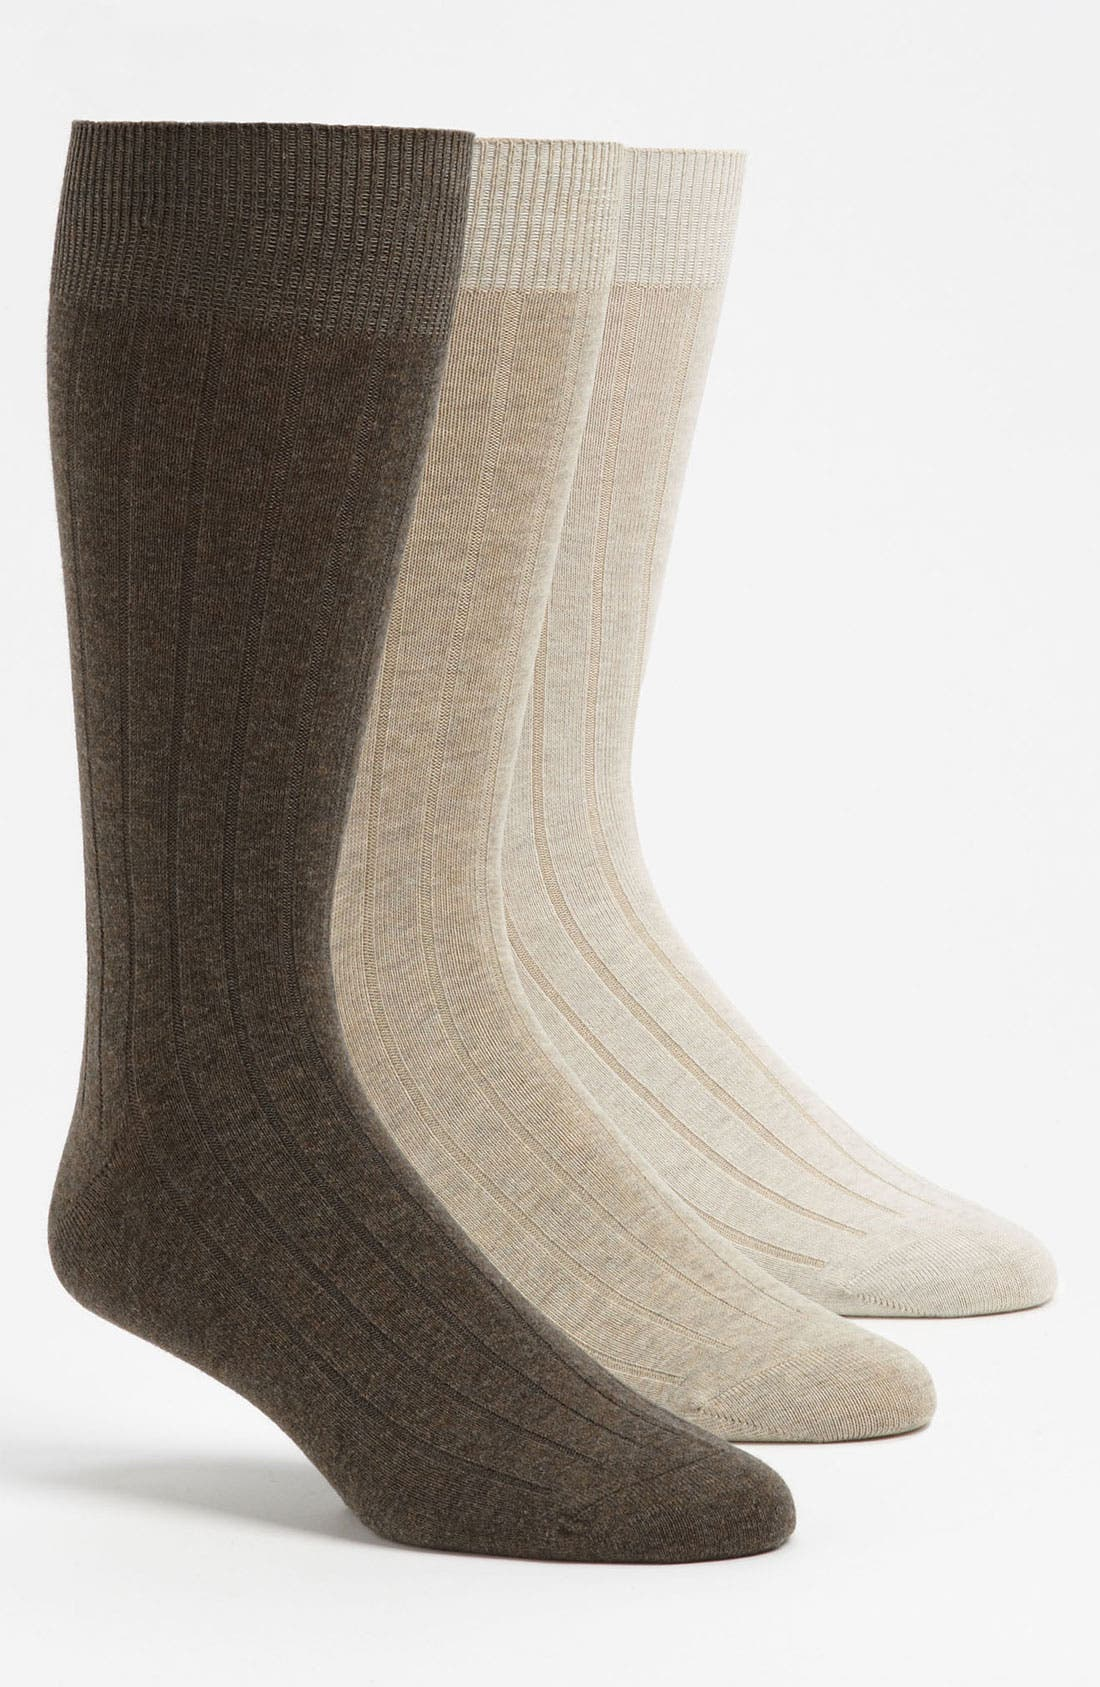 Main Image - Tommy Bahama 'Cayman Casual' Crew Socks (3-Pack)